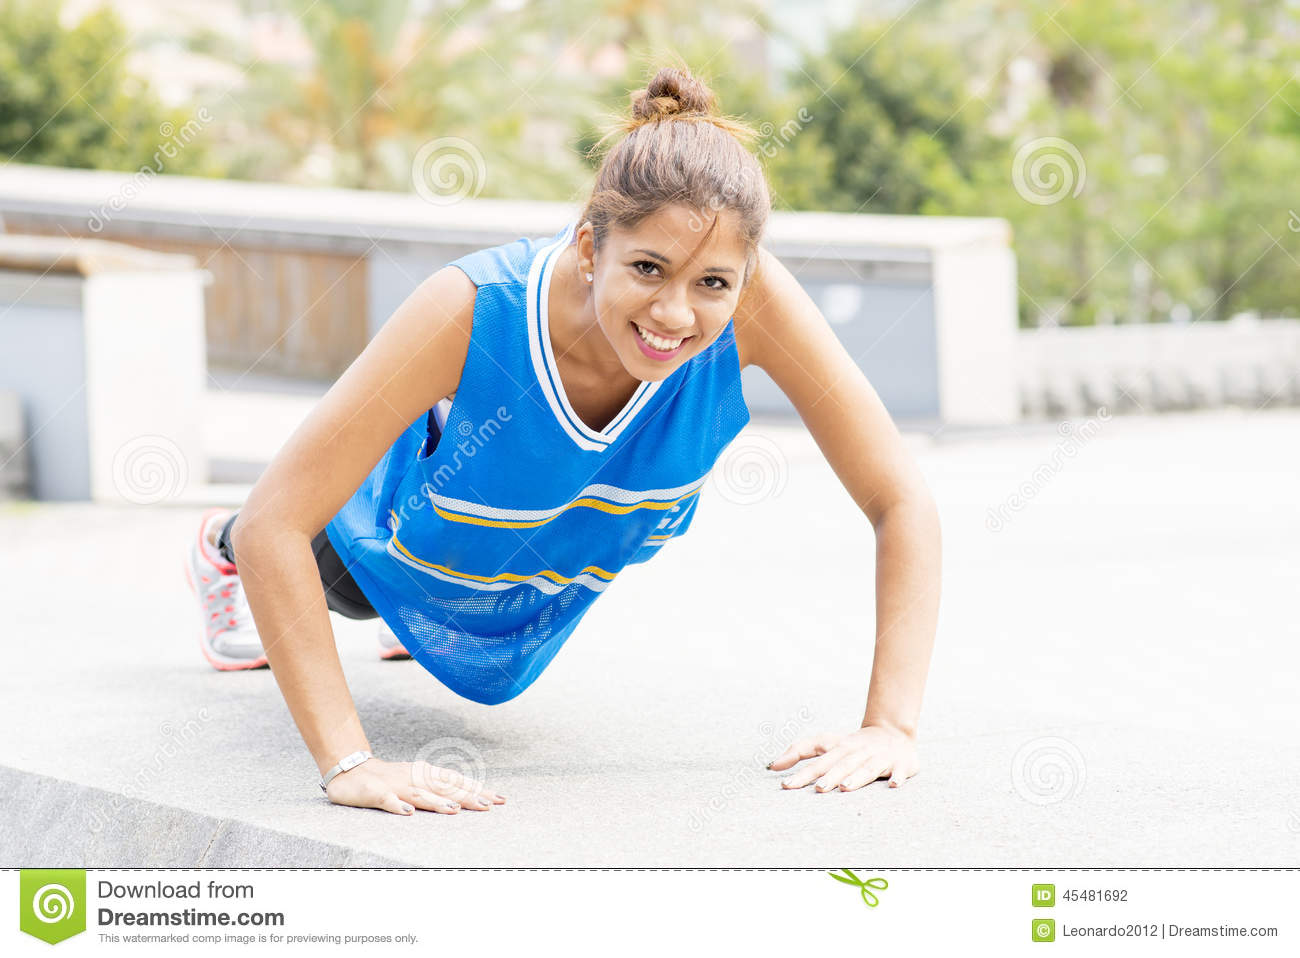 Smiling beautiful athletic woman doing pushups in the street.